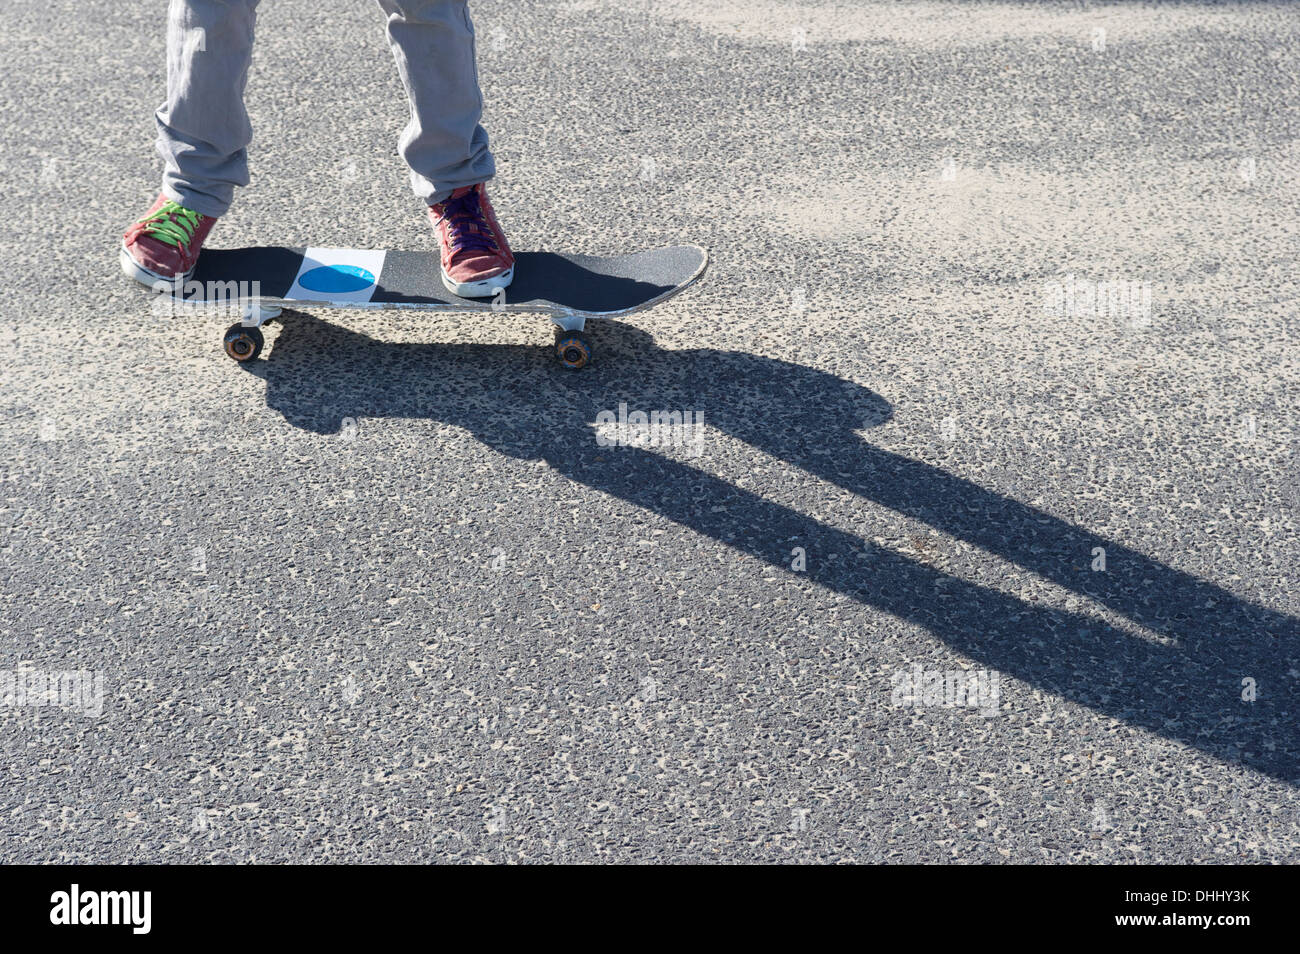 Detail of legs riding skateboard - Stock Image